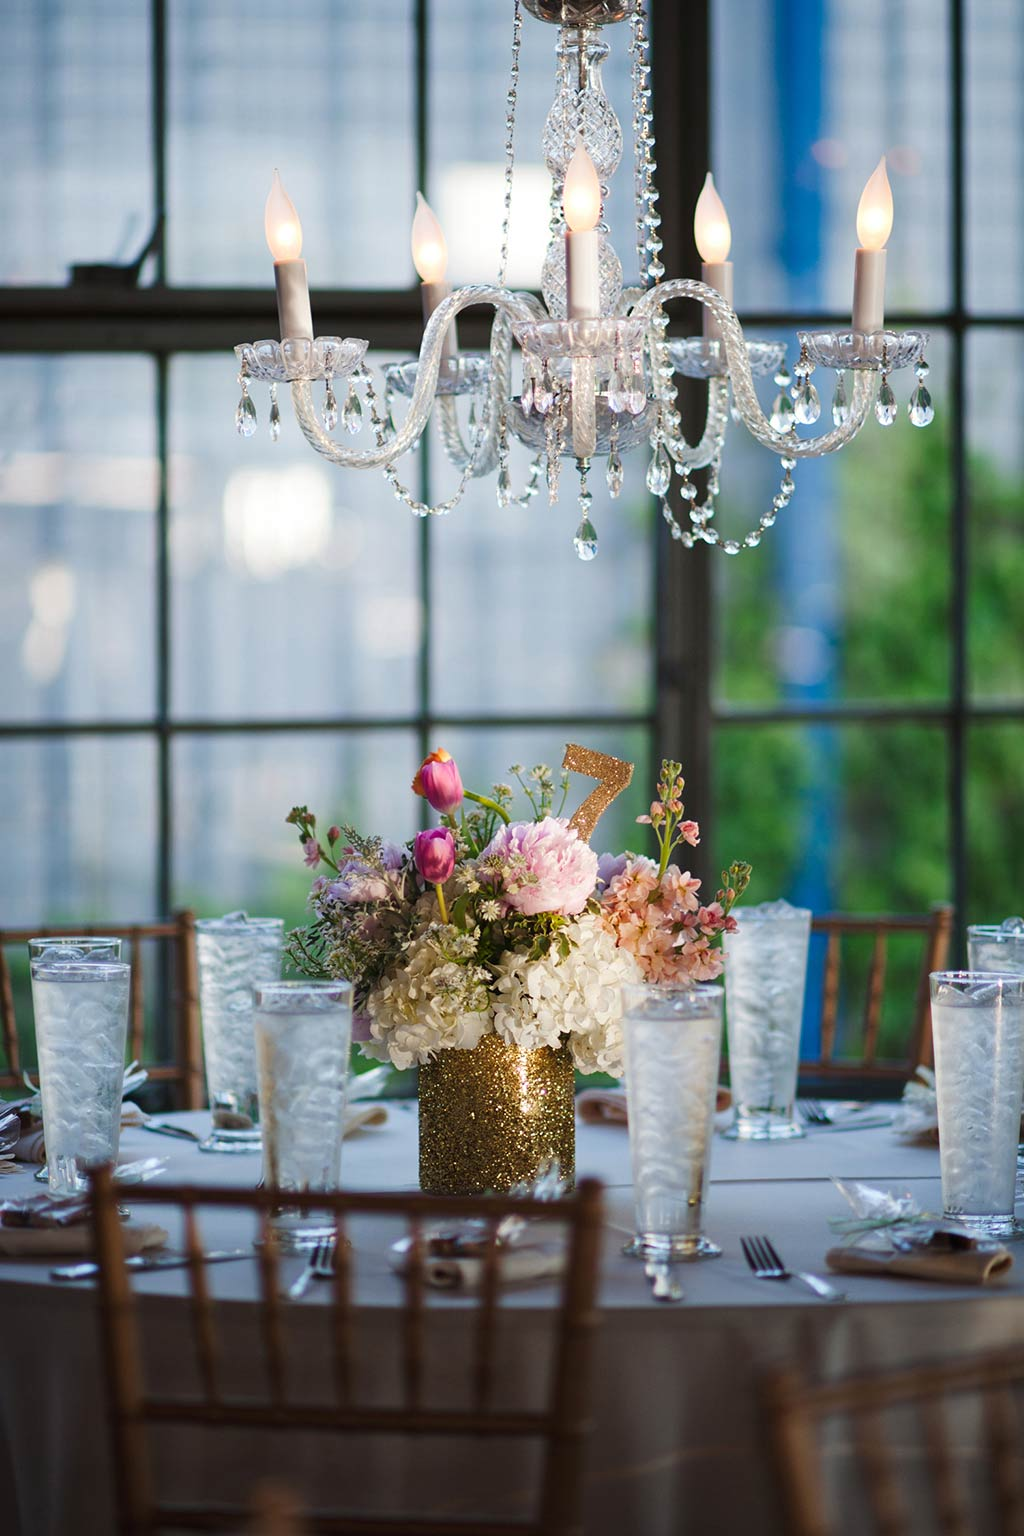 Chandelier above Wedding Reception Table